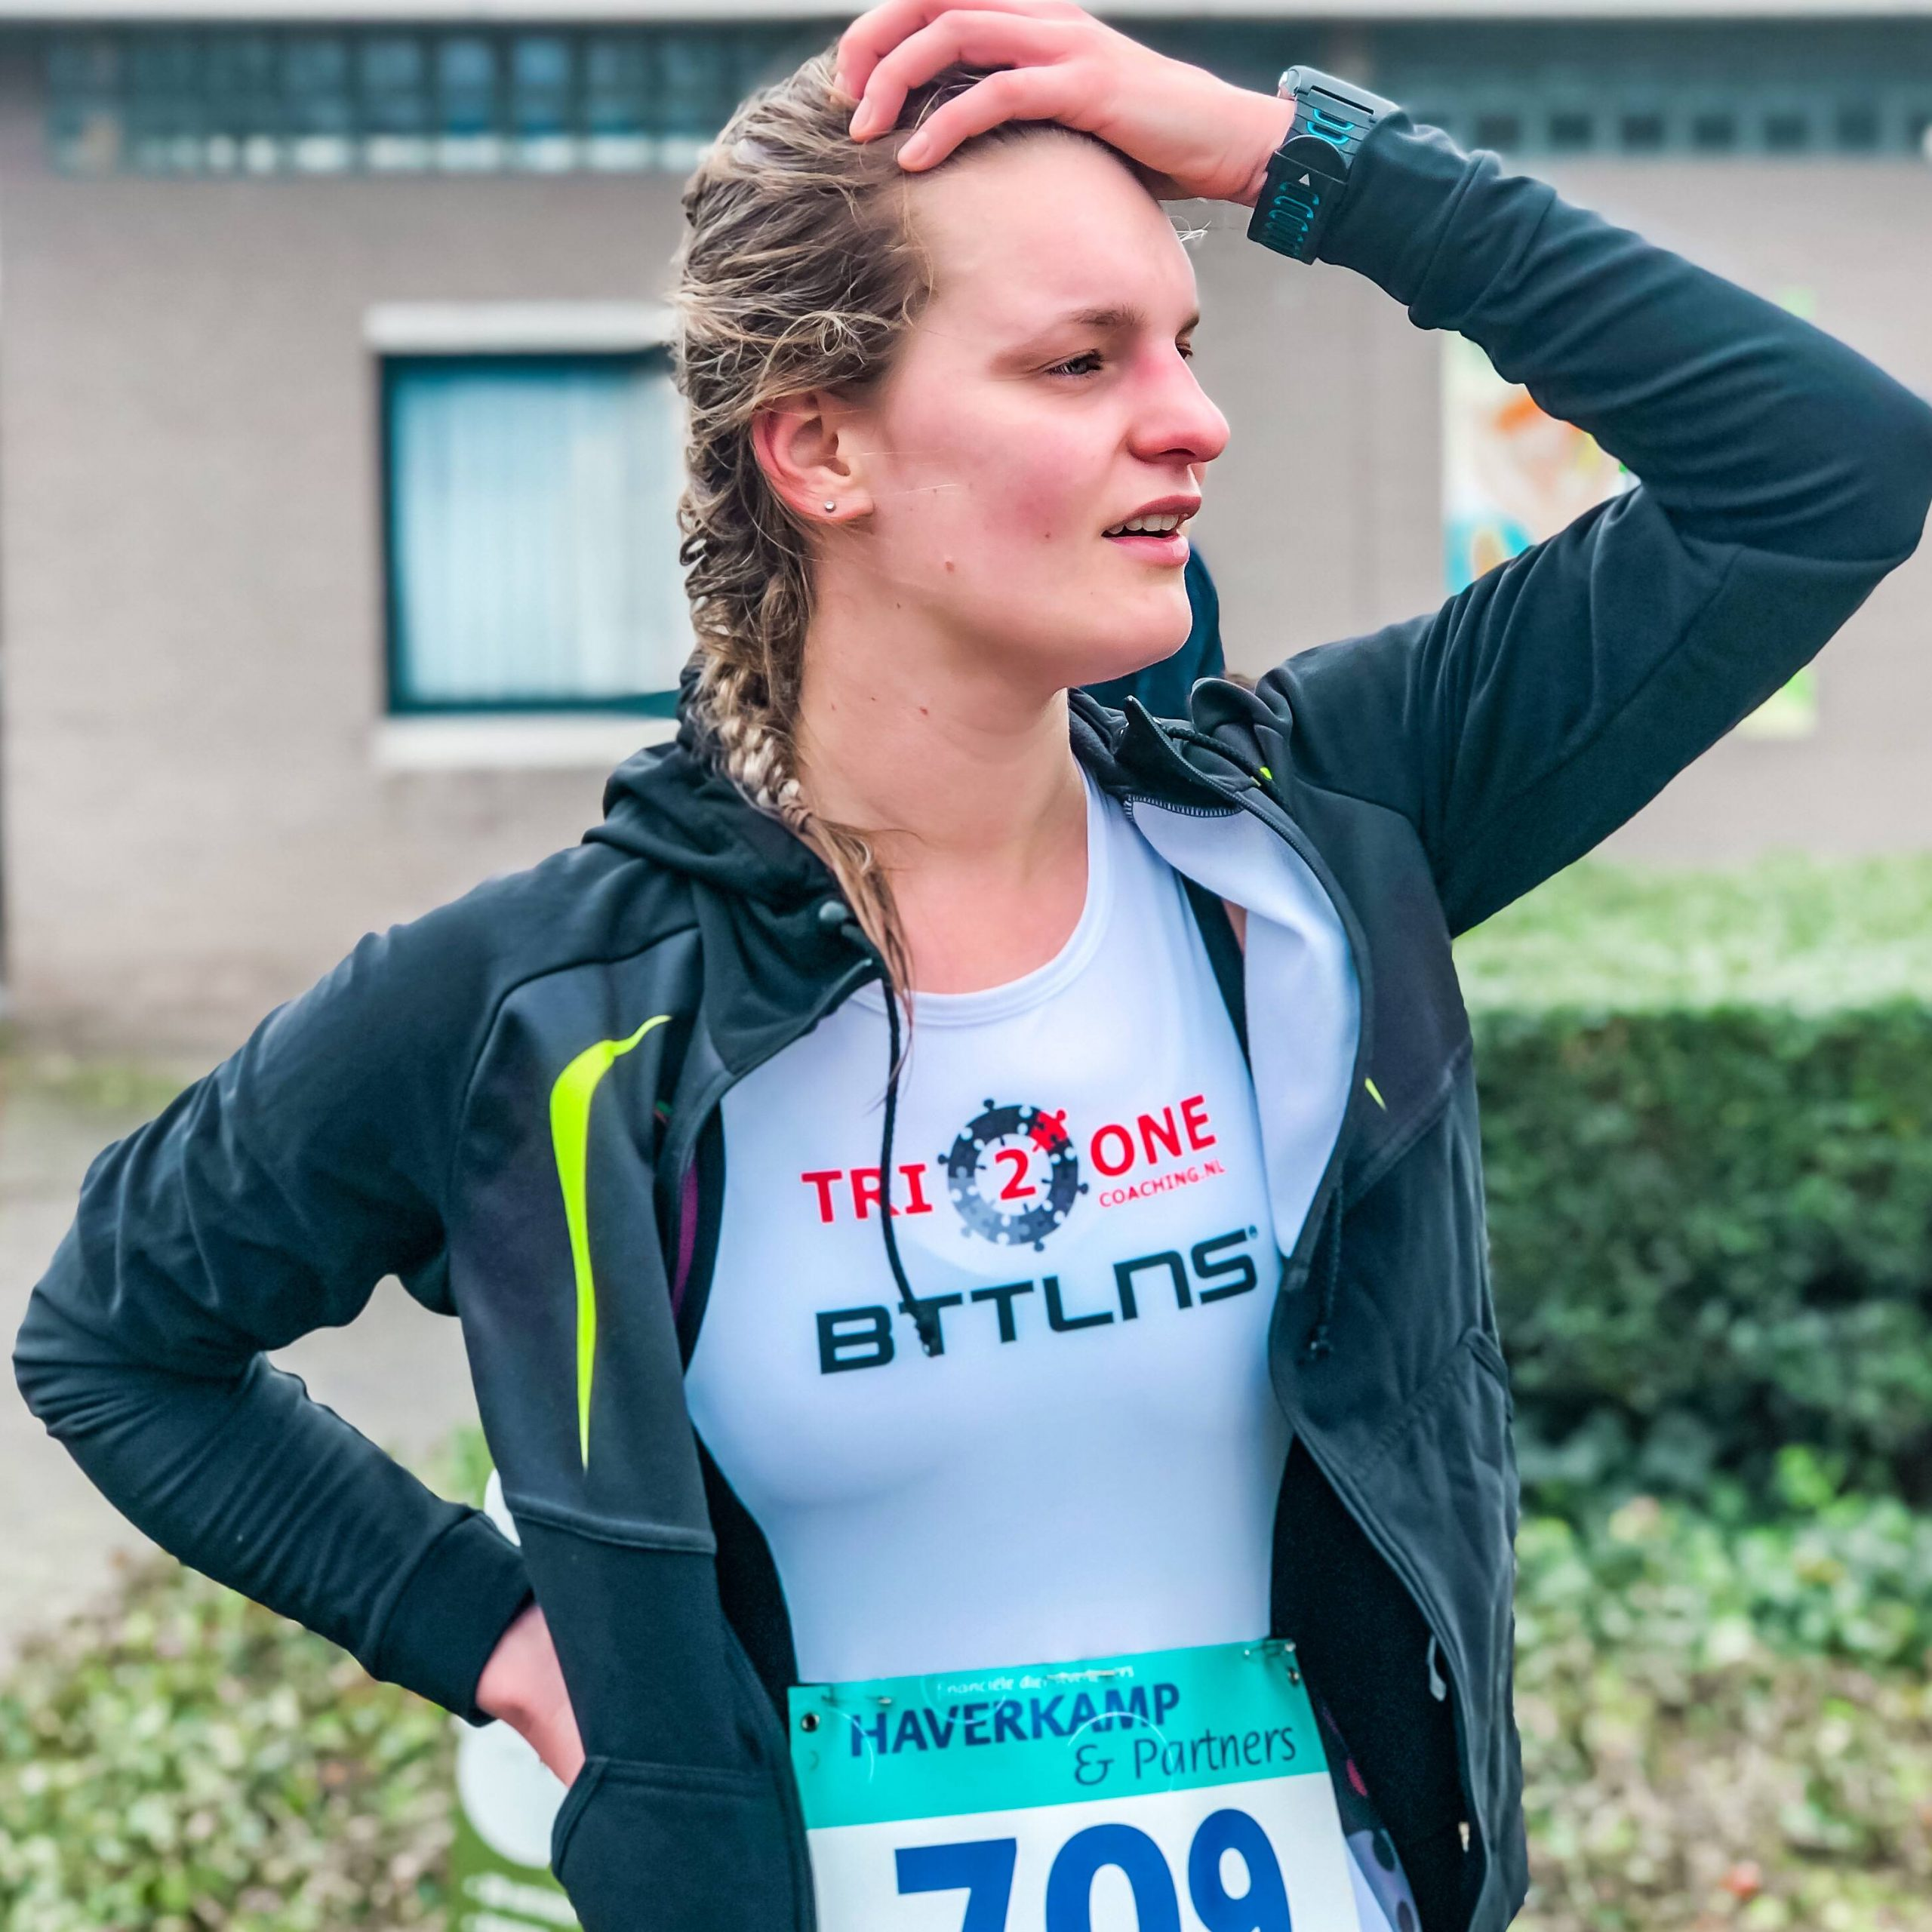 Vorm is variabel – raceverslag zwemloop Roosendaal – road to revanche #2